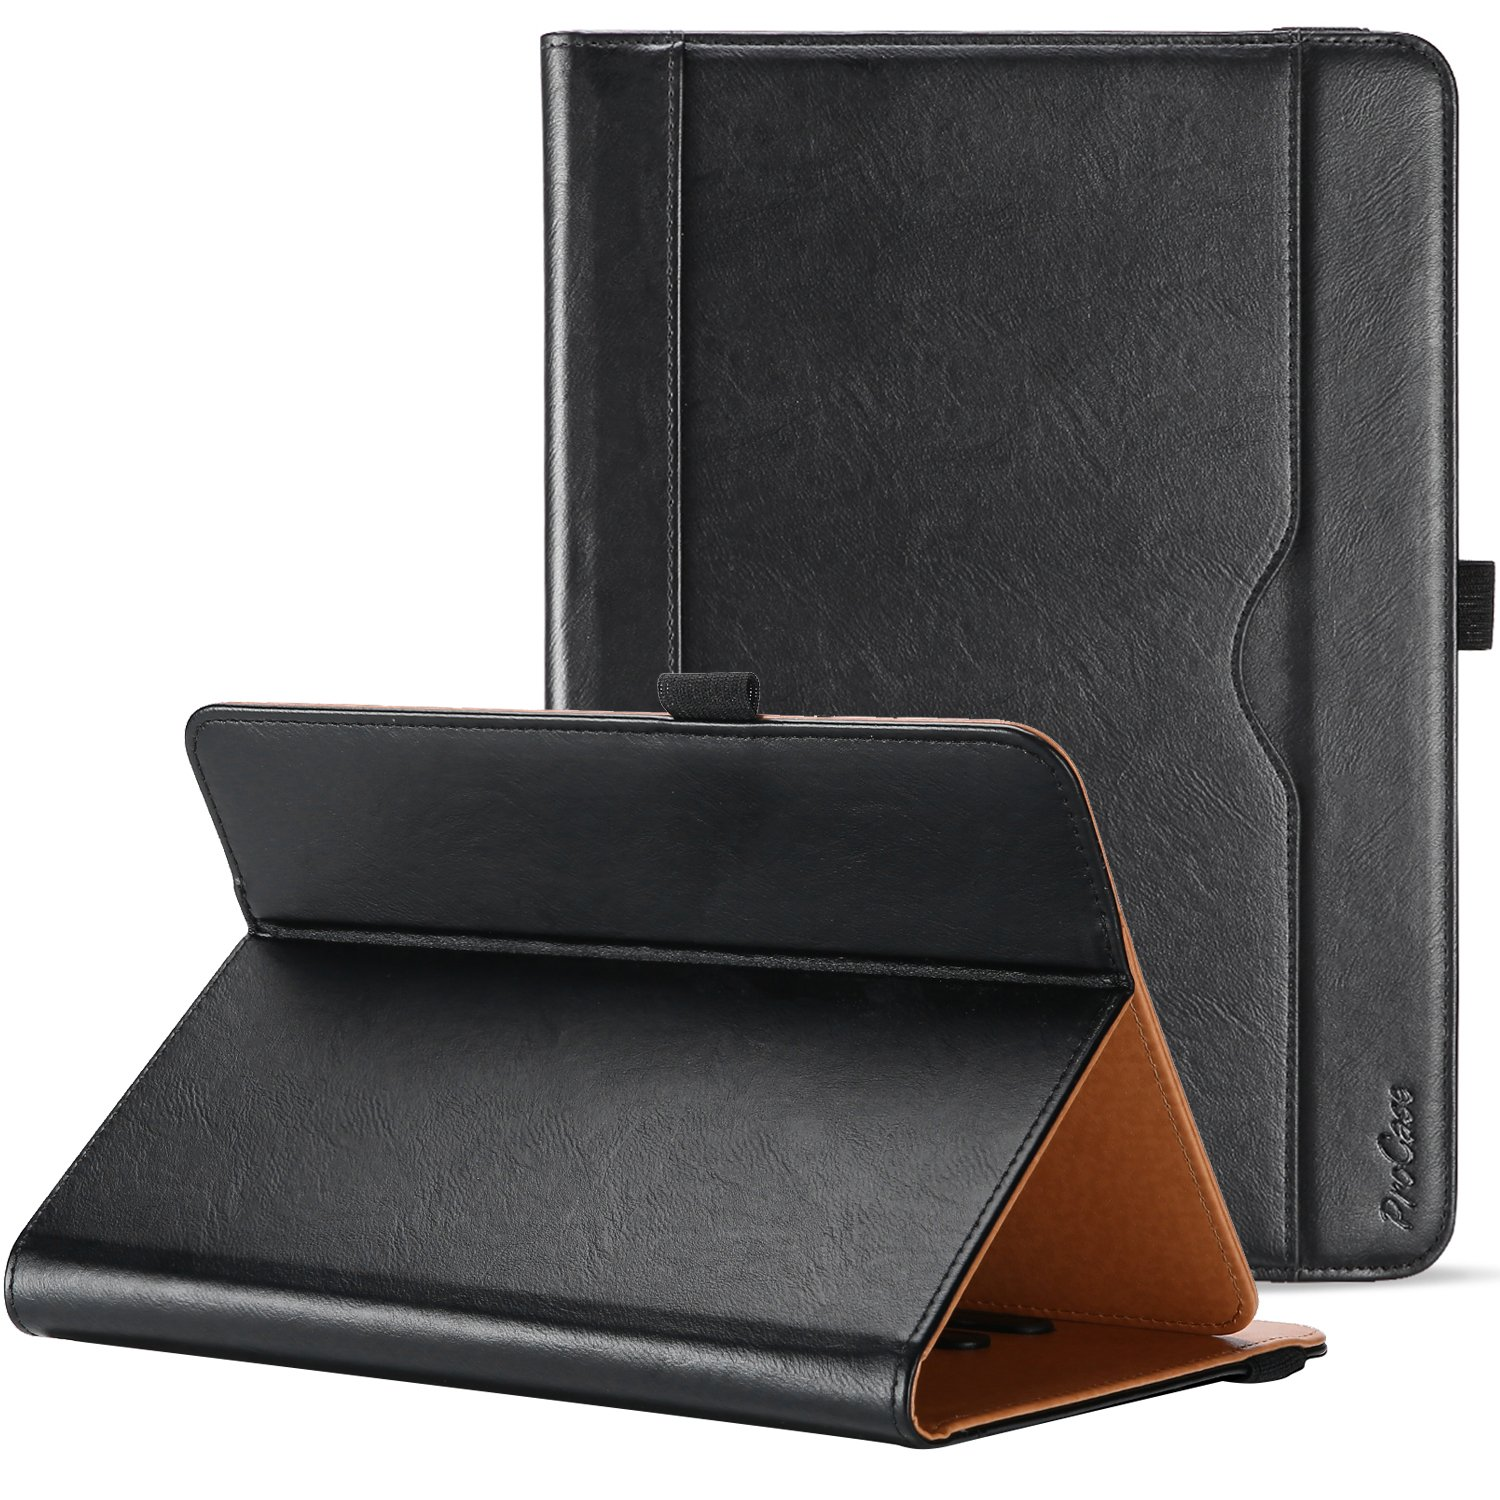 ProCase Universal Case for 9-10 inch Tablet, Stand Folio Case Protective Cover for 9'' 10.1'' Touchscreen Tablet, with Multiple Viewing Angles, Document Card Pocket and Bonus Stylus Pen – Black by ProCase (Image #1)